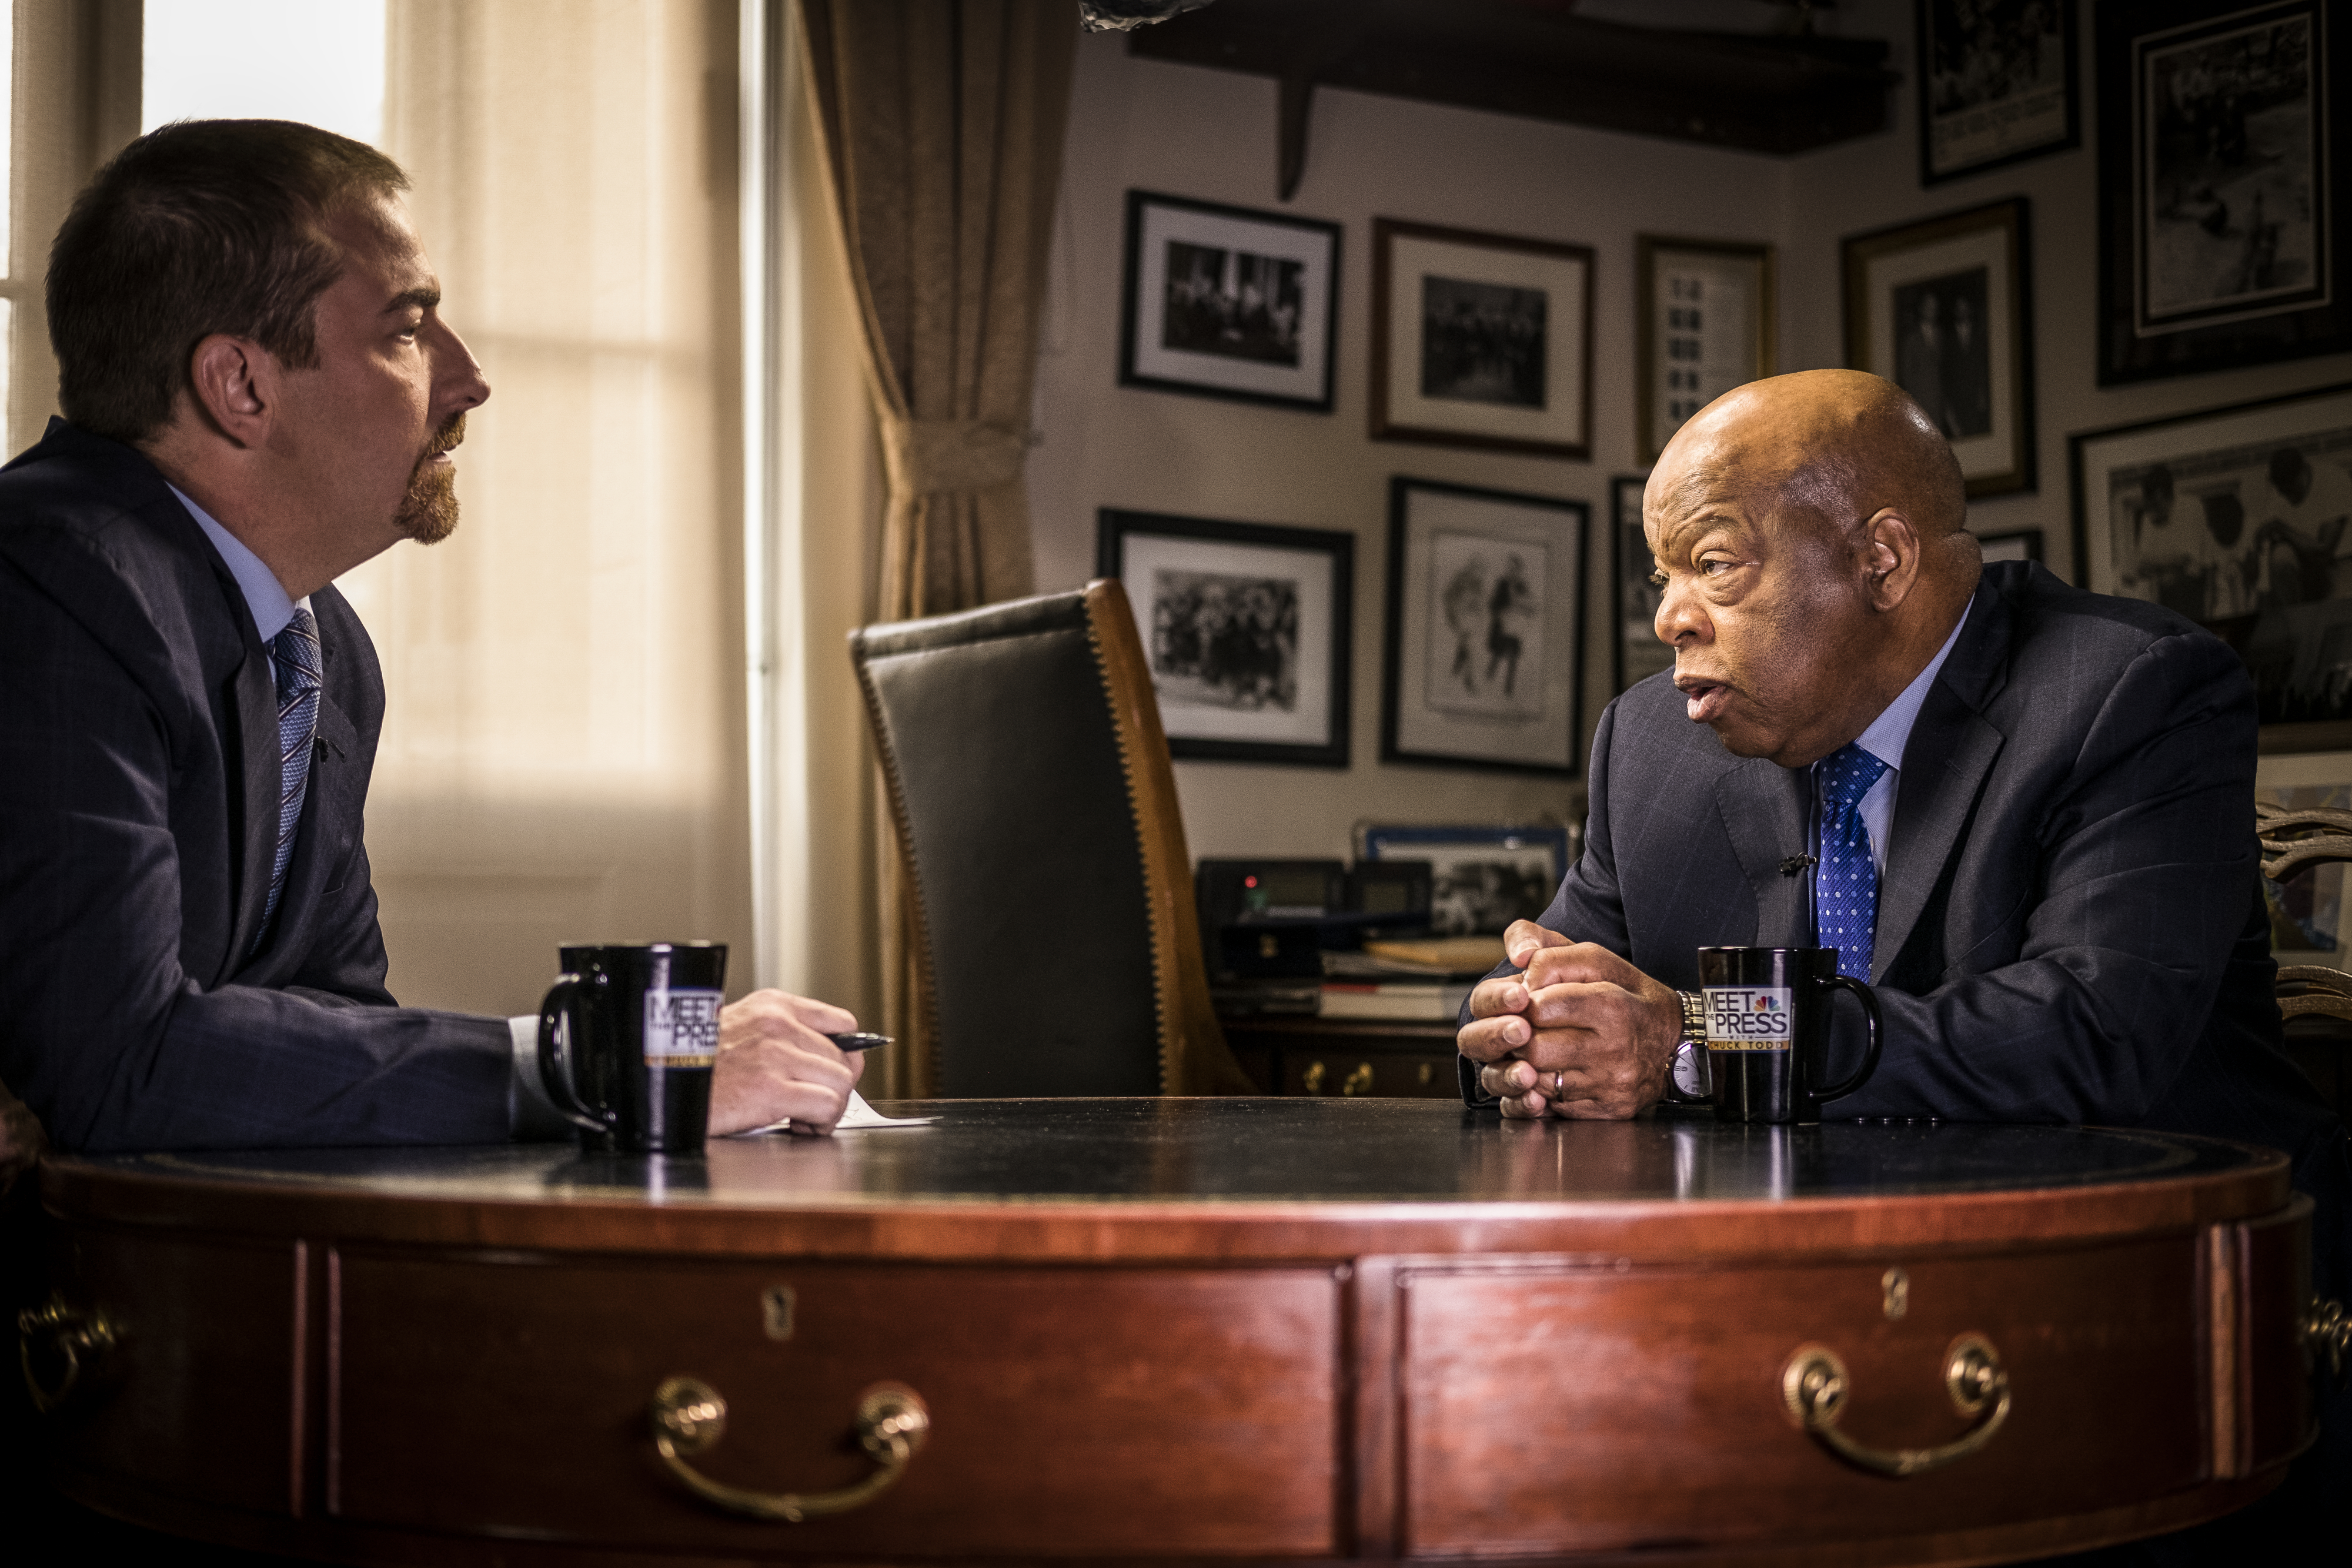 John Lewis on Donald Trump: 'Almost impossible for me to work with him'